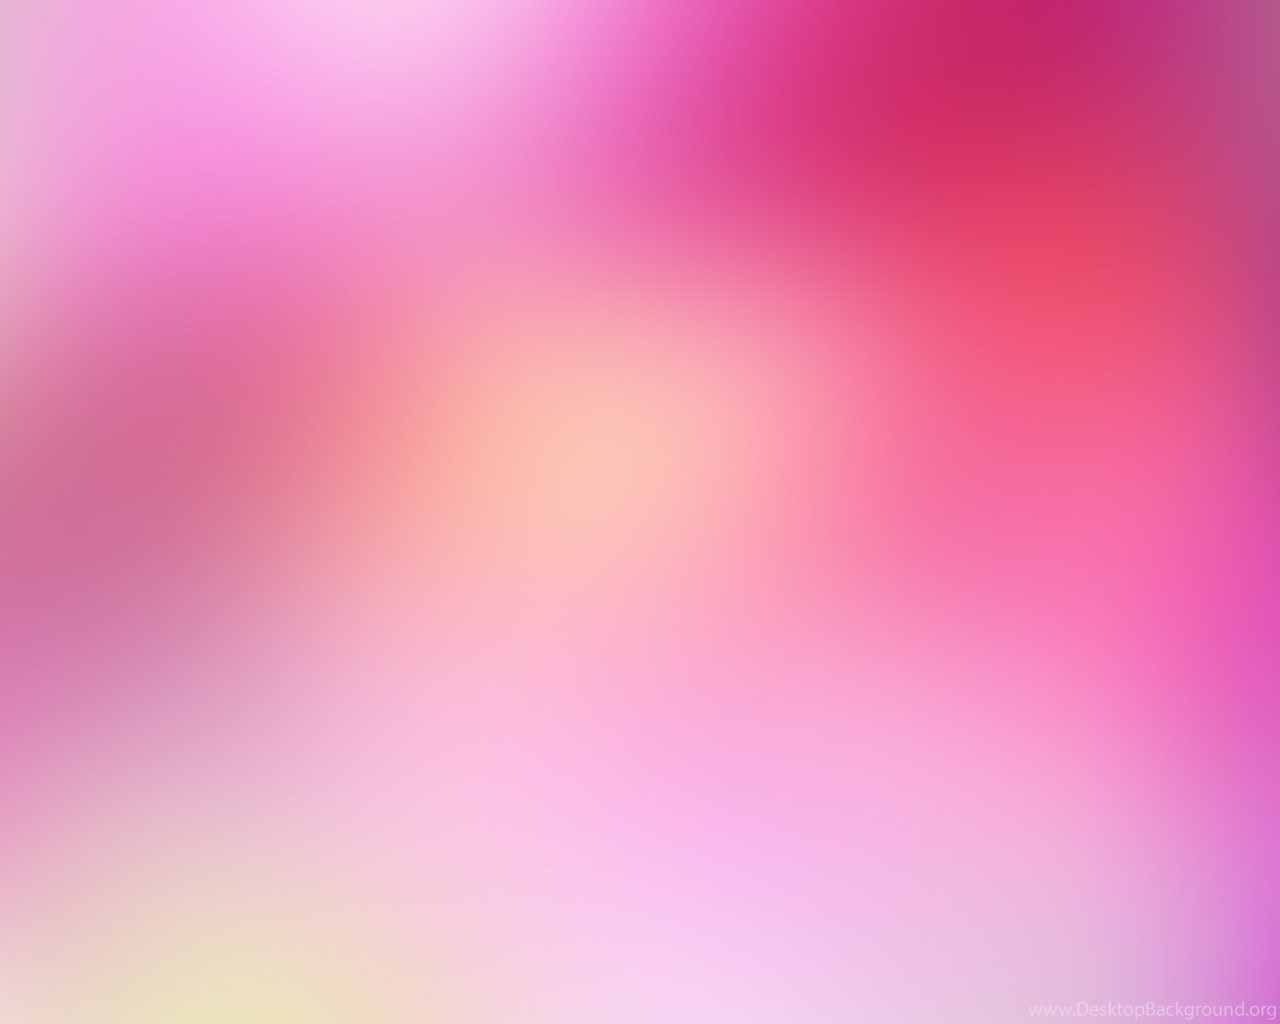 Plain Light Pink Backgrounds Hd Desktop Background